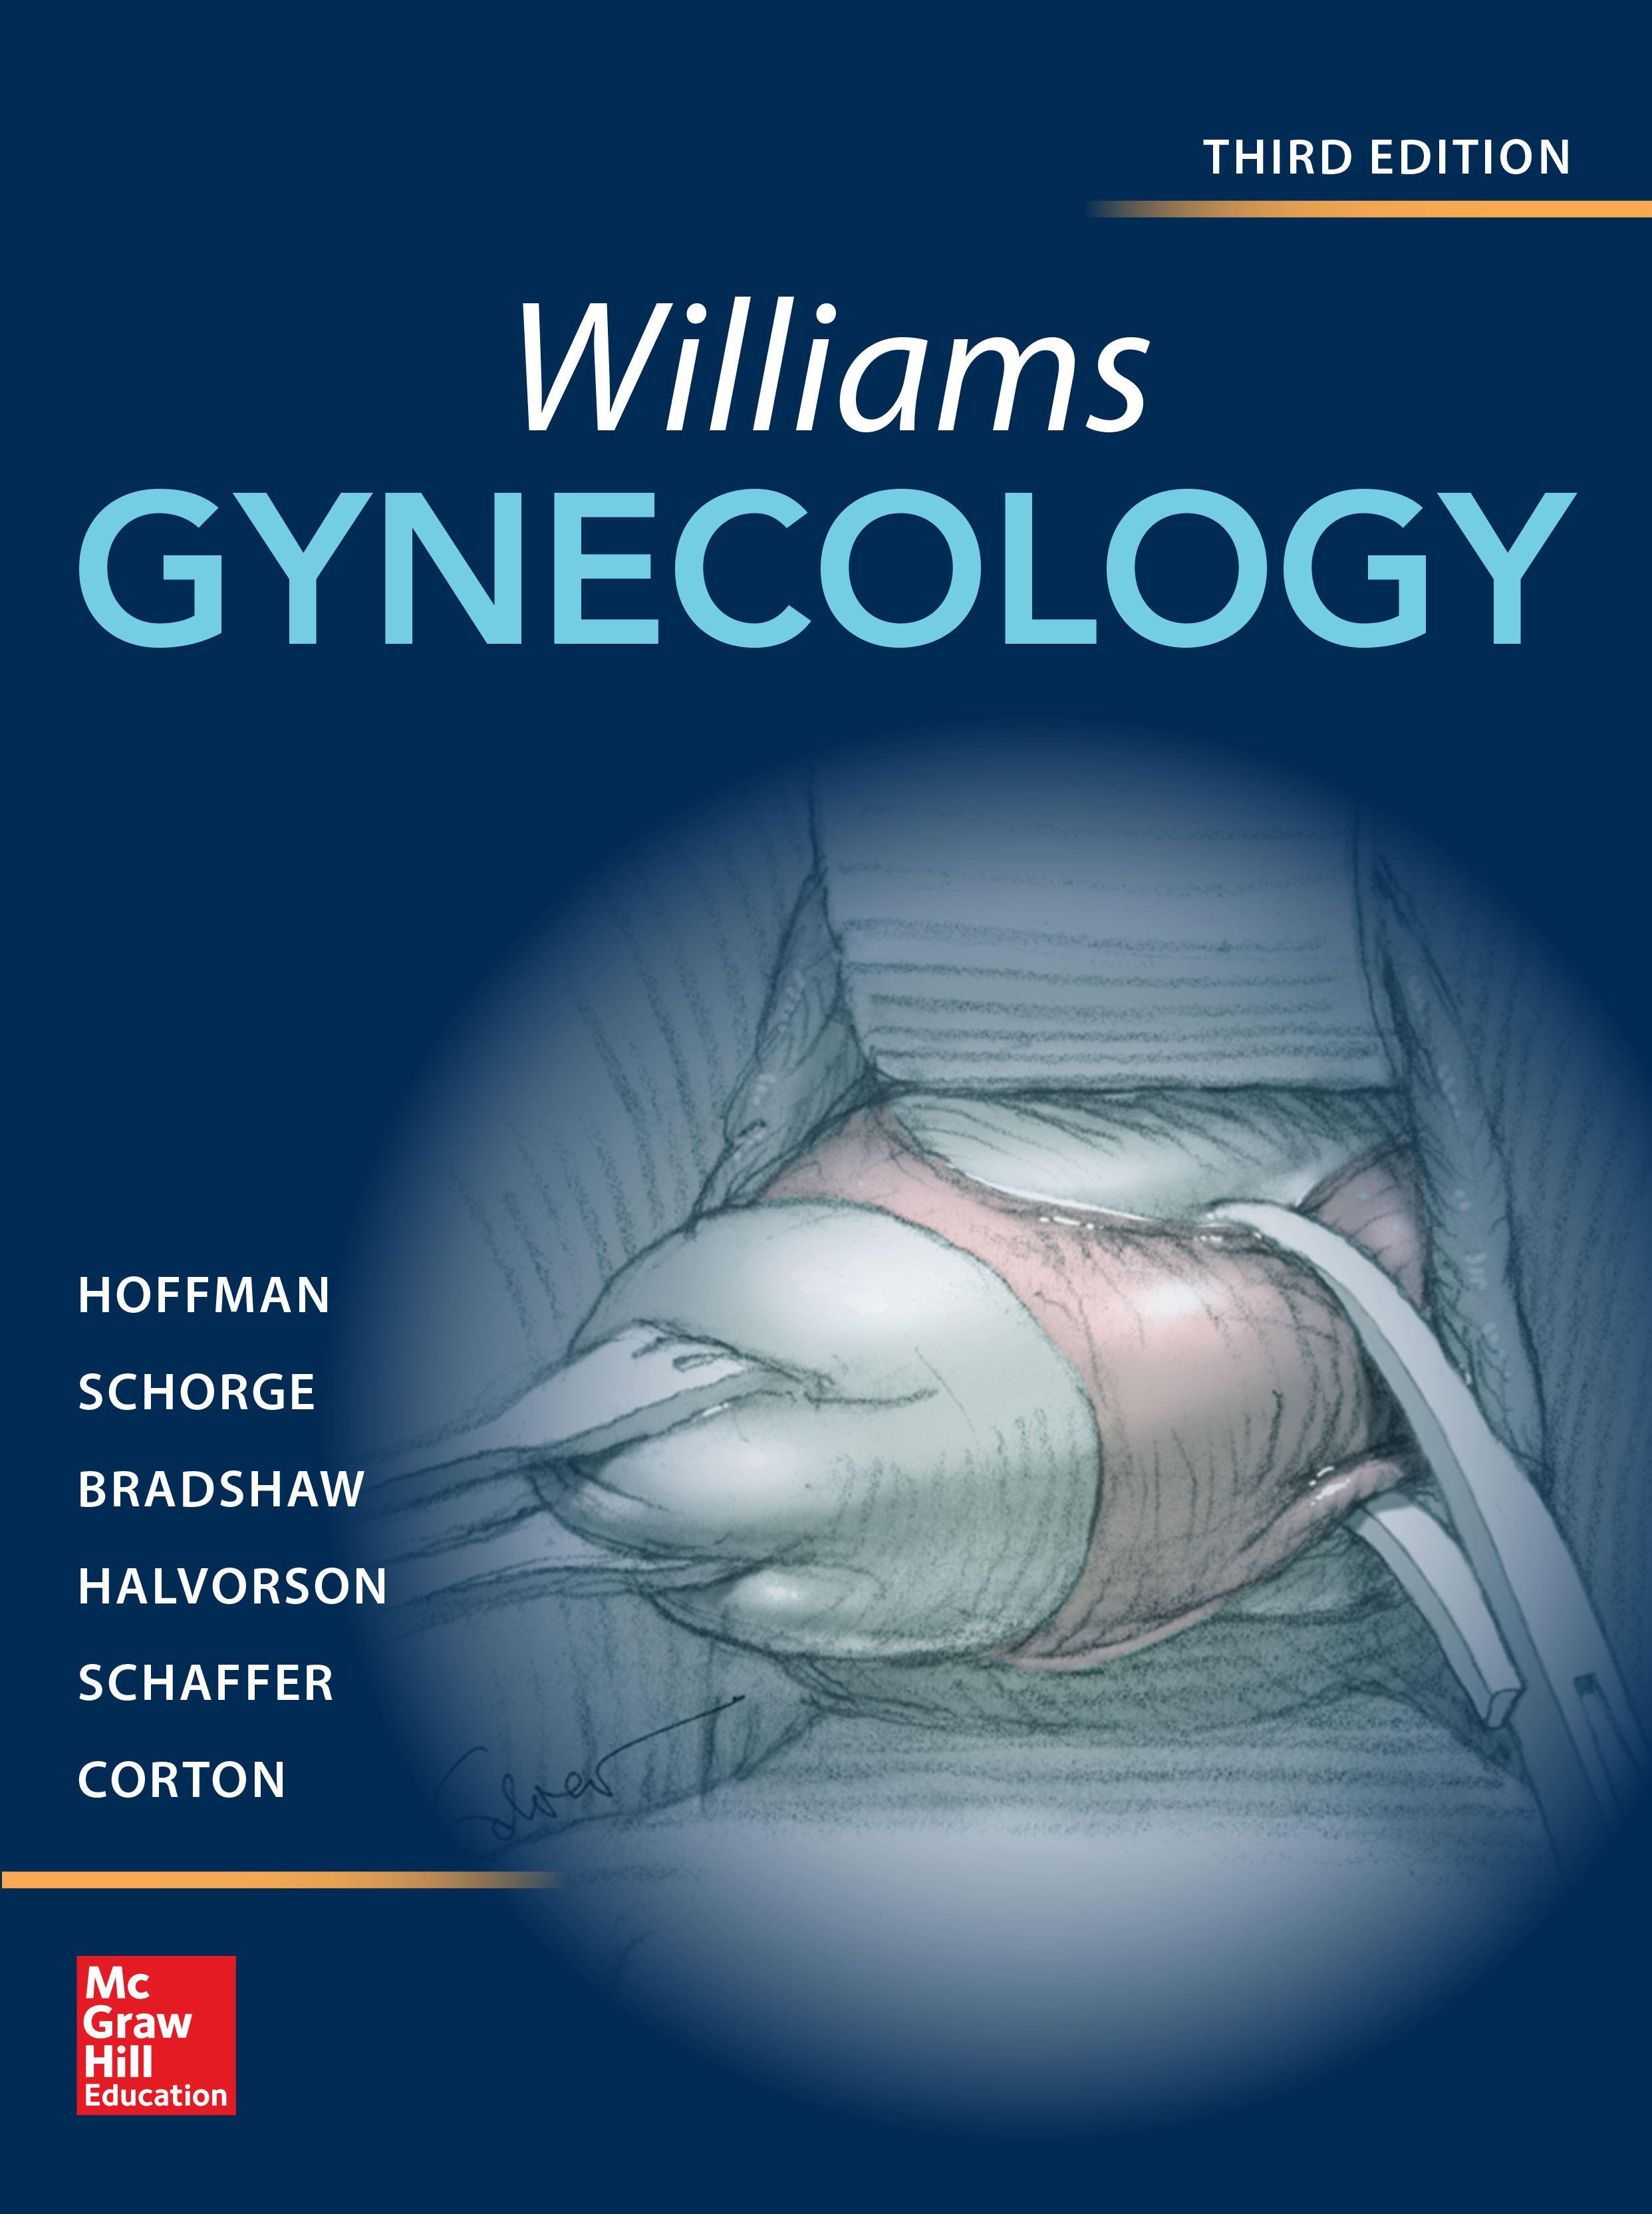 E books obstetrics gynaecology libguides at the chinese e books obstetrics gynaecology libguides at the chinese university of hong kong fandeluxe Gallery